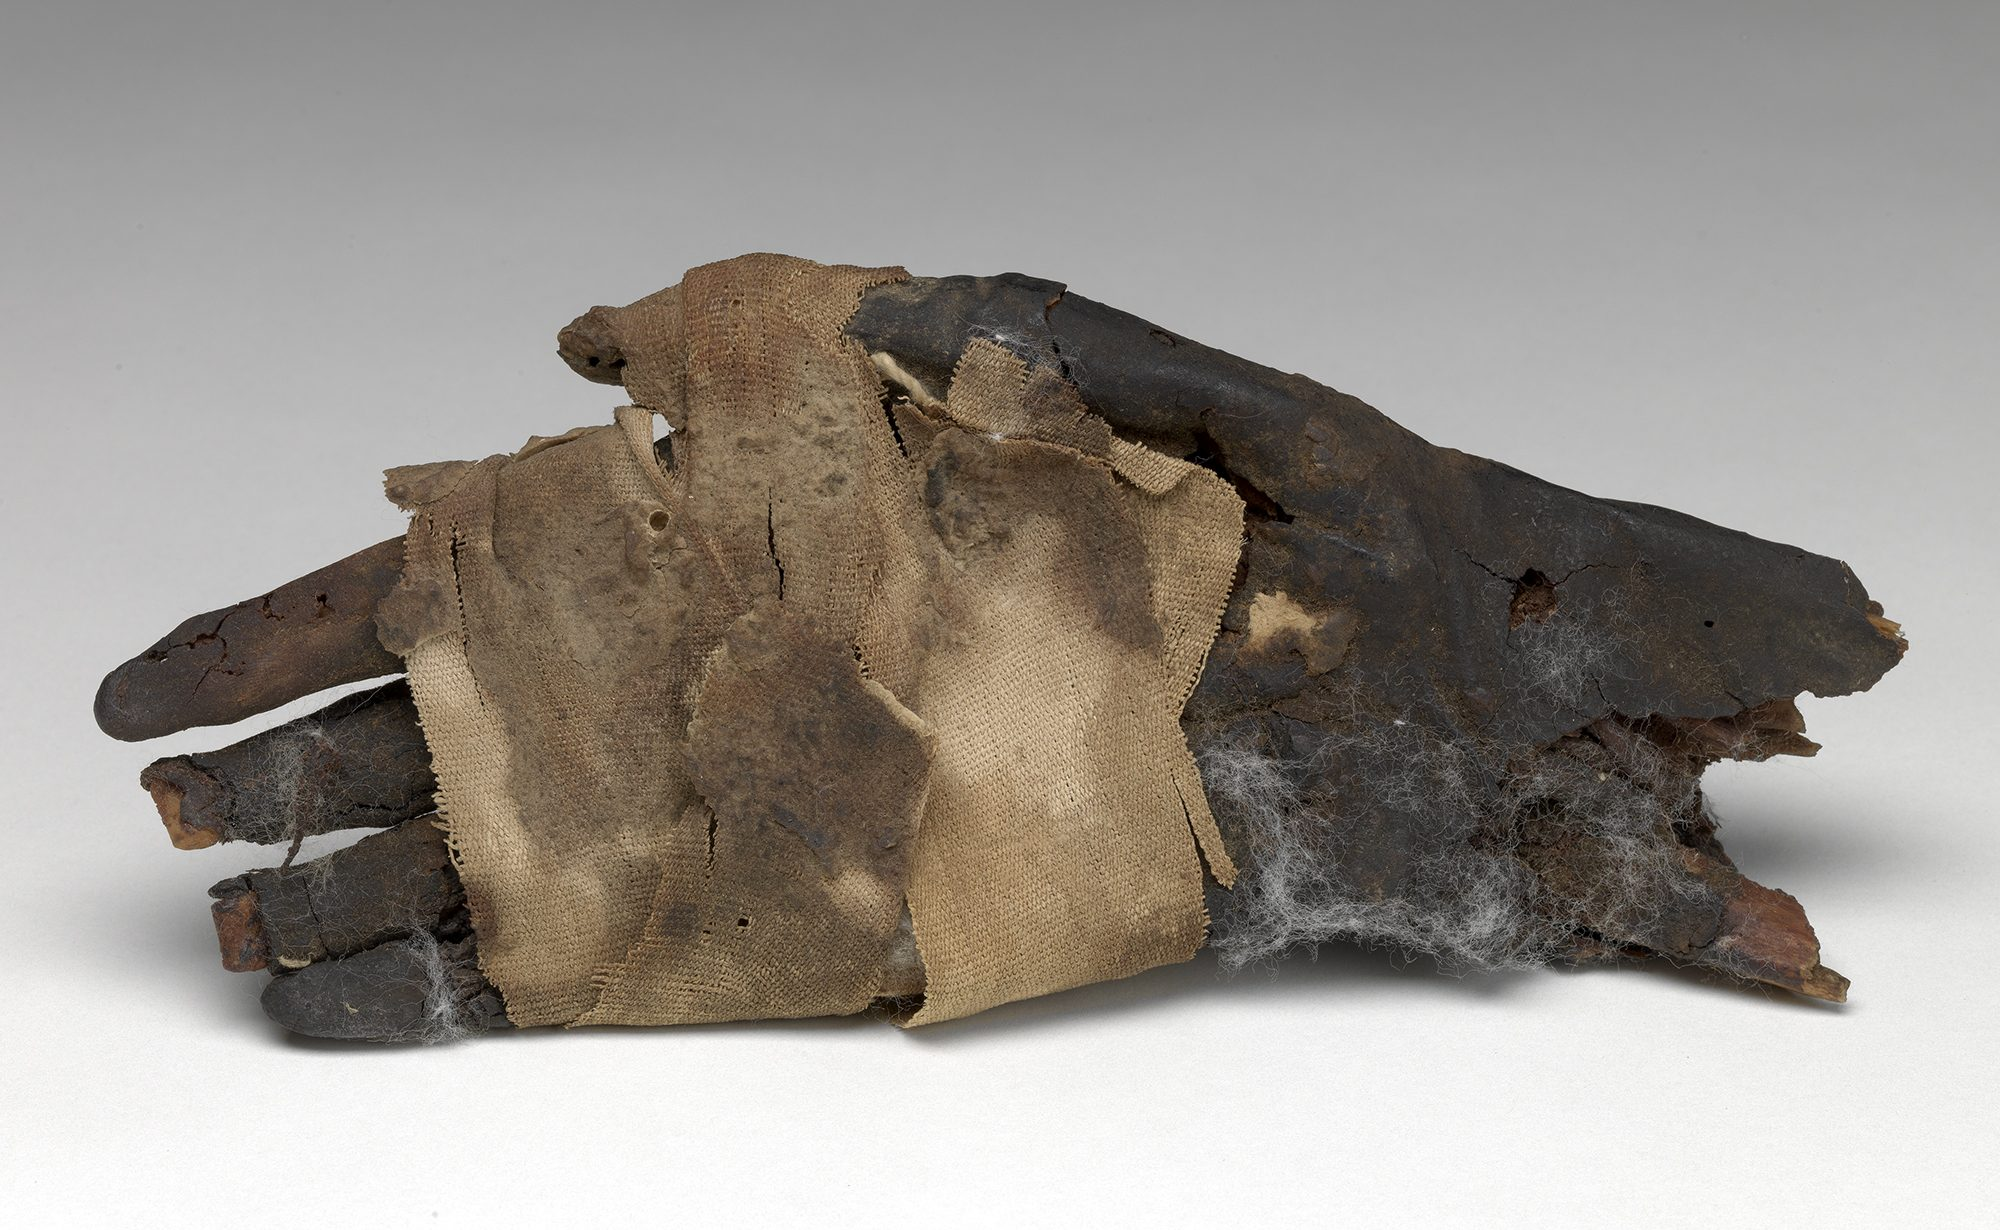 Egyptian, Mummified Hand, ca. 70-230 AD. Roman Period. Human remains, linen, oil resin, 8 1/8 x 3 1/8 in. Anonymous gift, SEG.10.27.